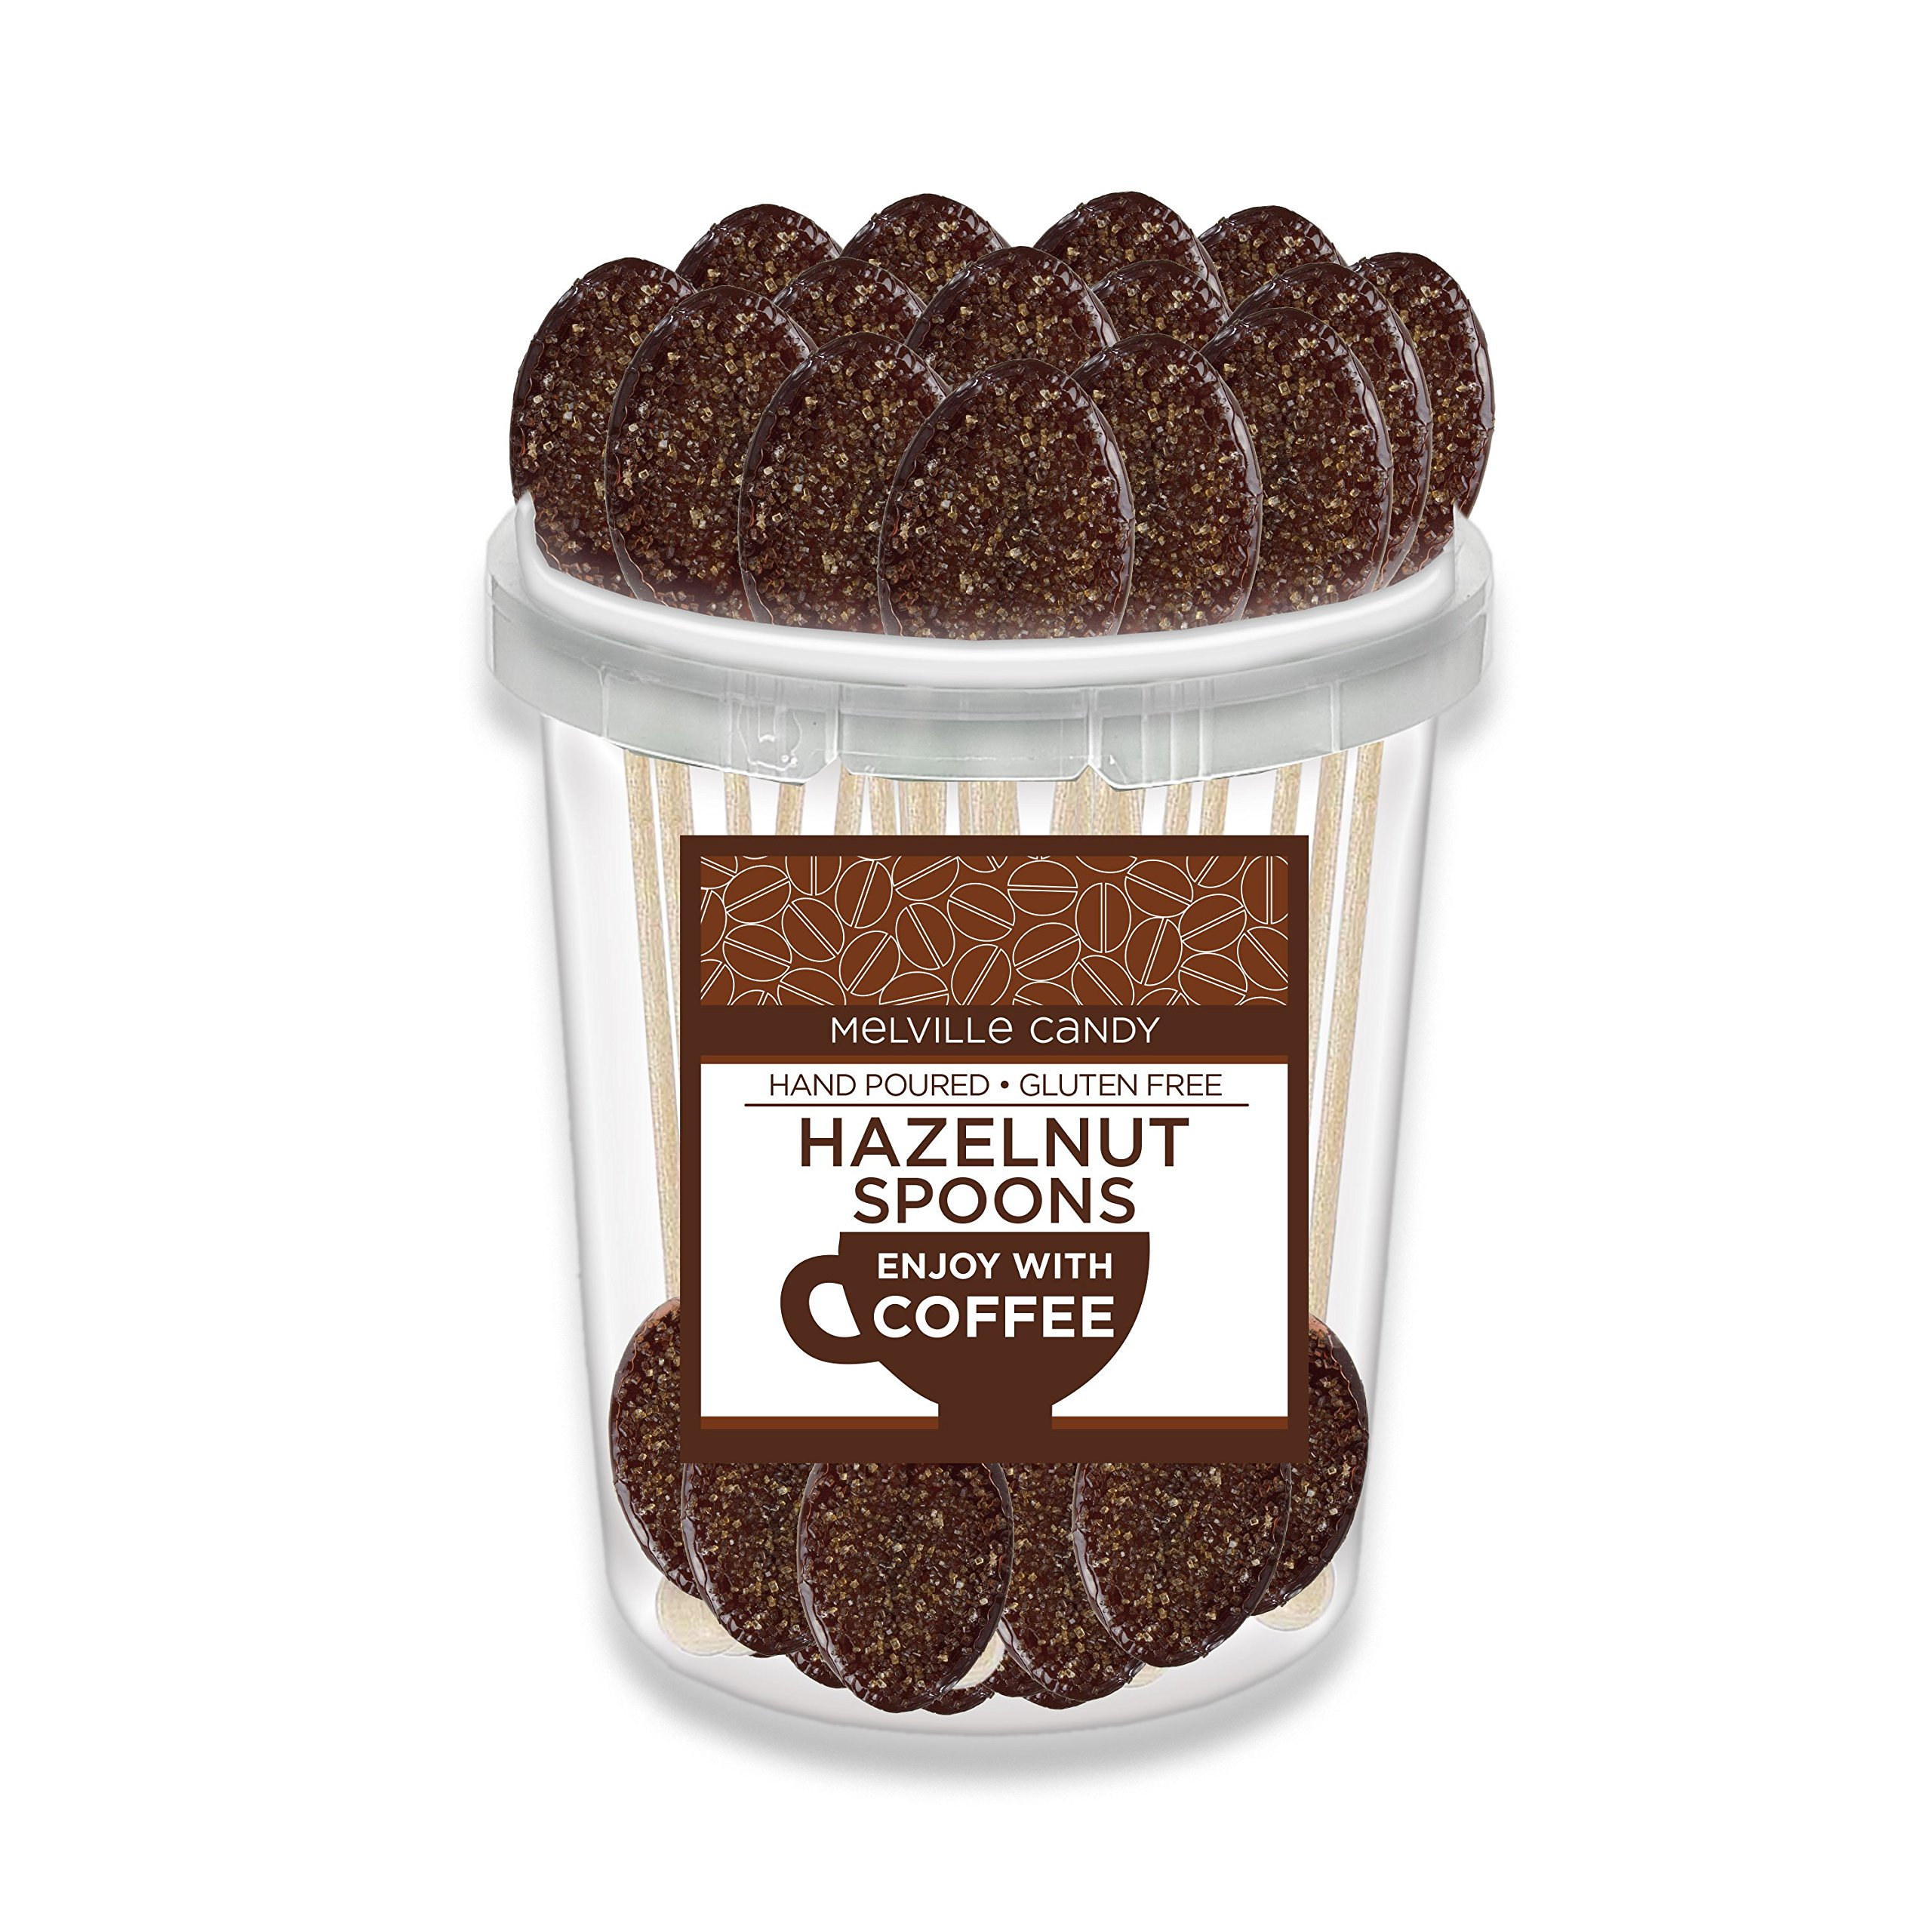 Hazelnut Flavored Coffee Spoon Hard Candy Stirrer (30 Count) by Melville Candy